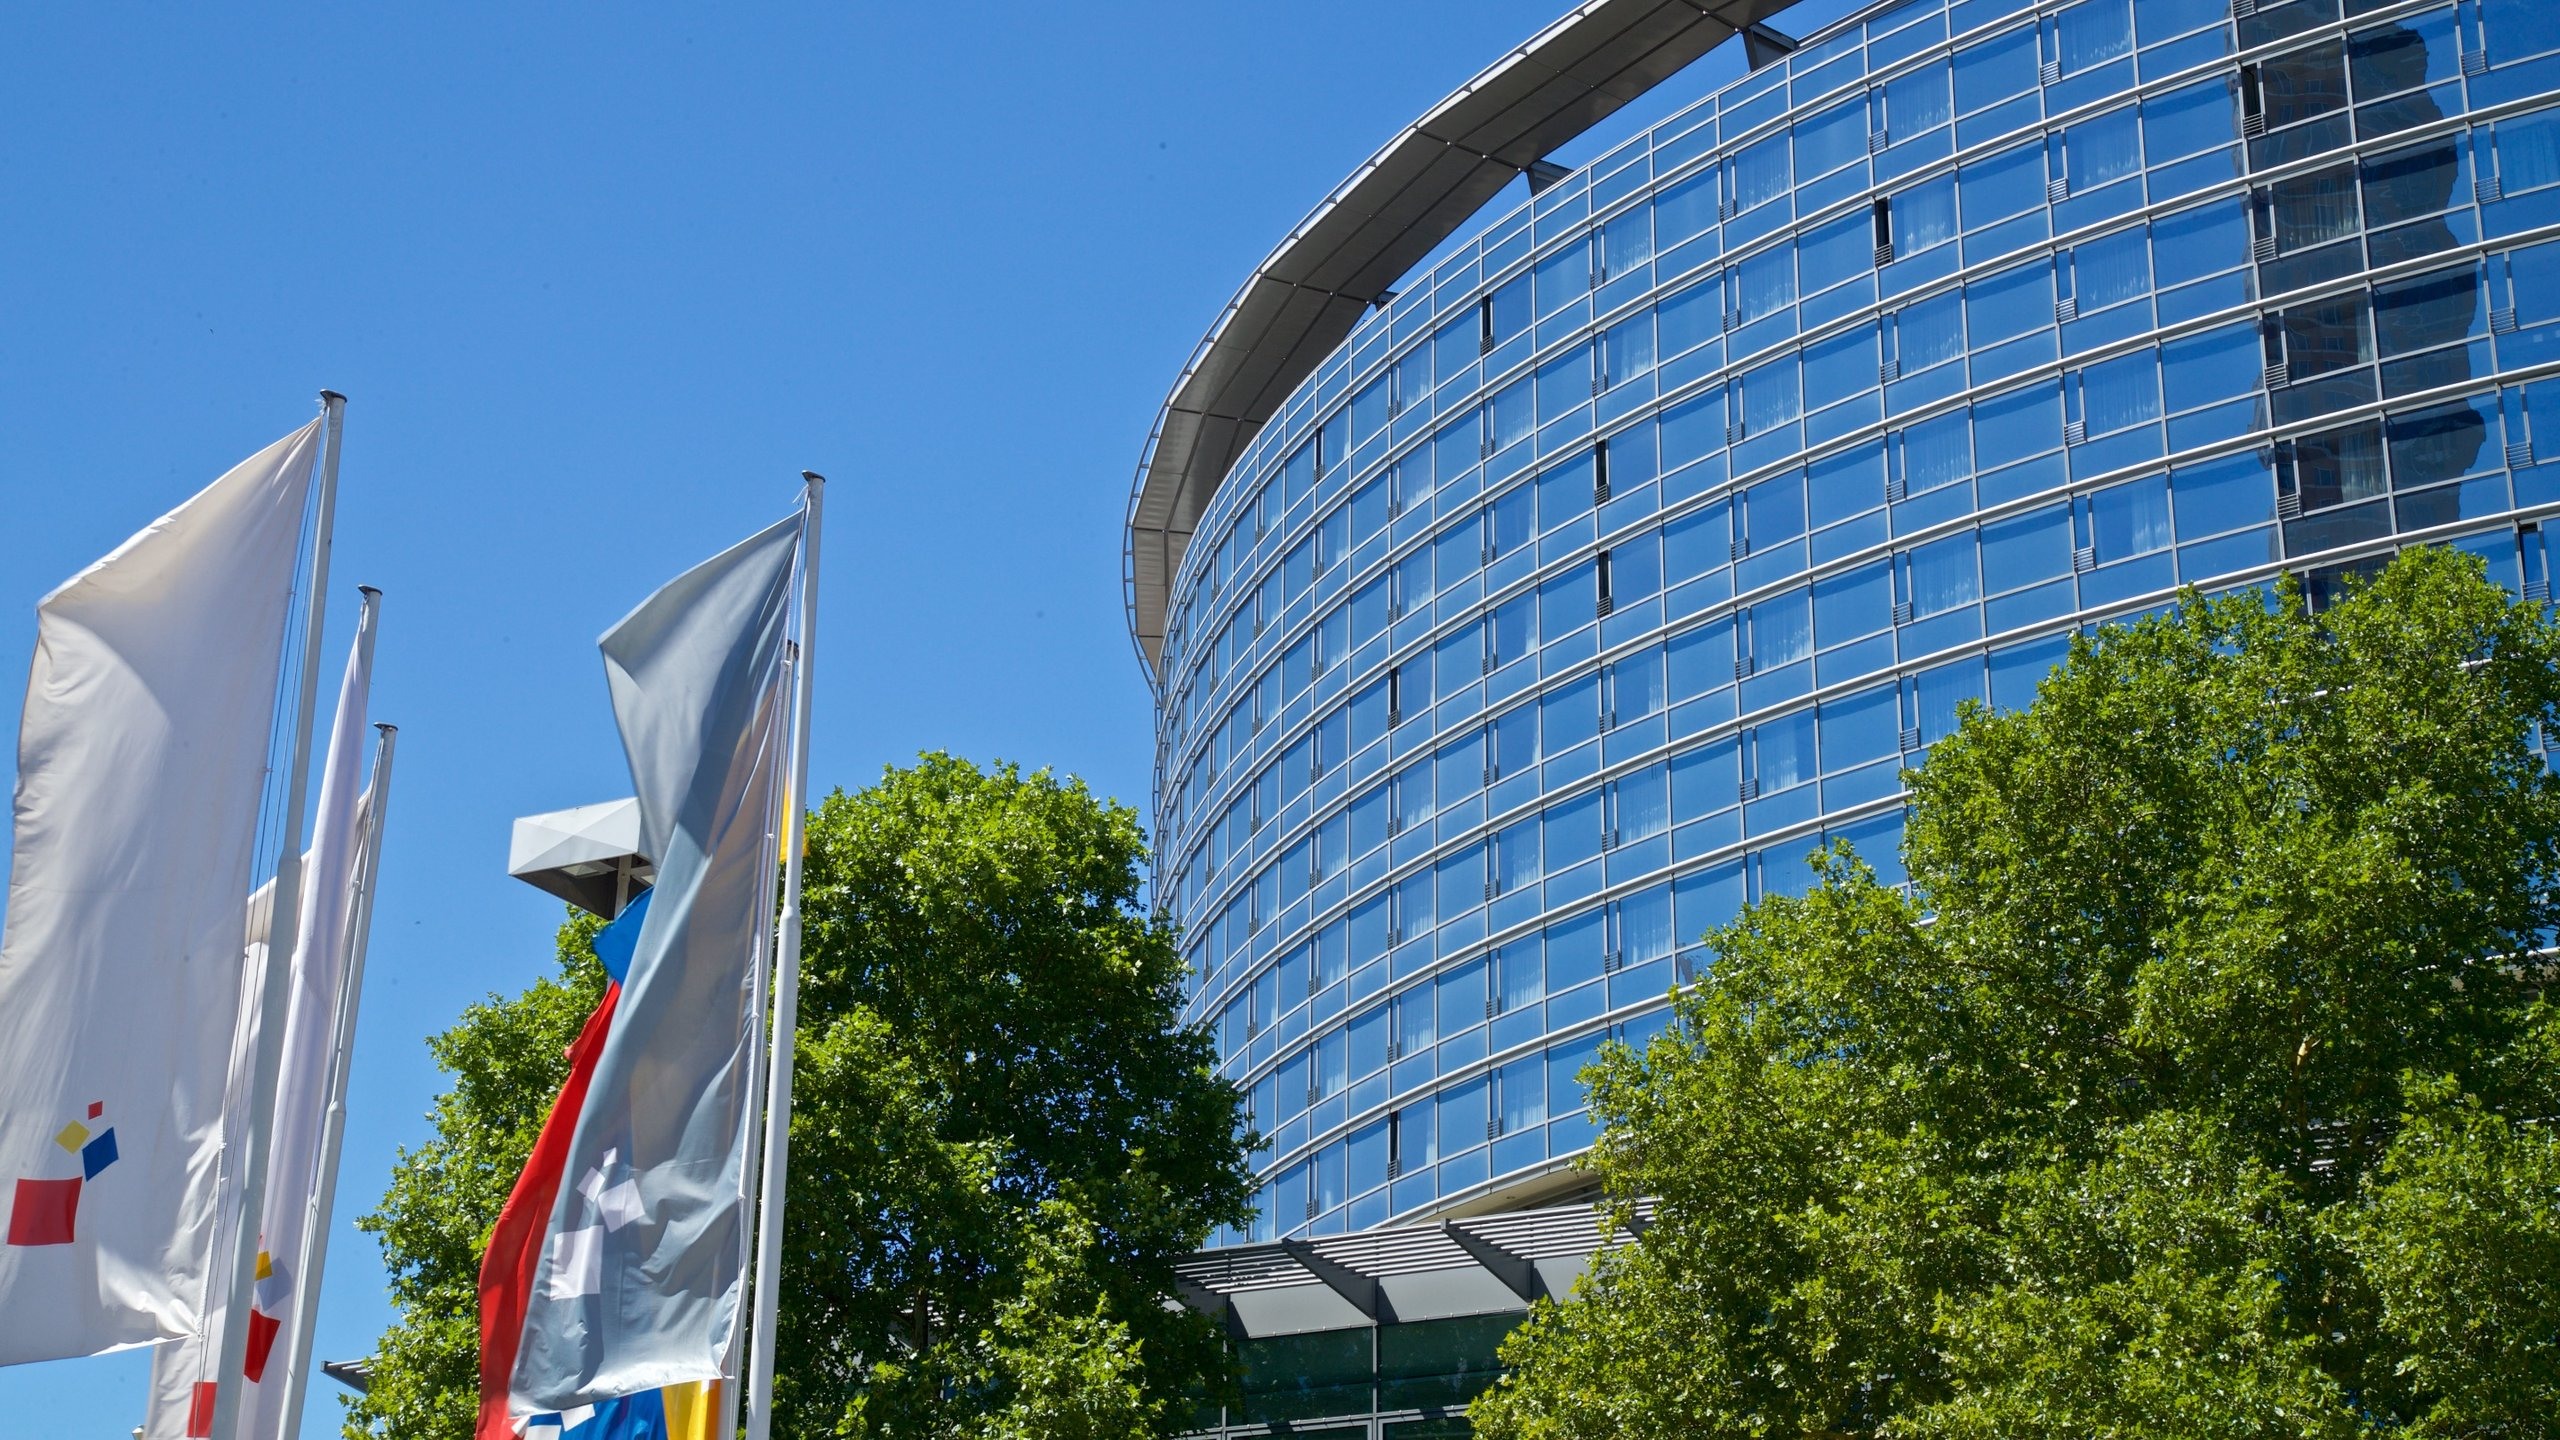 Learn about the events happening at Frankfurt Trade Fair during your trip to Frankfurt. Check out the shops and top-notch restaurants in this family-friendly area.